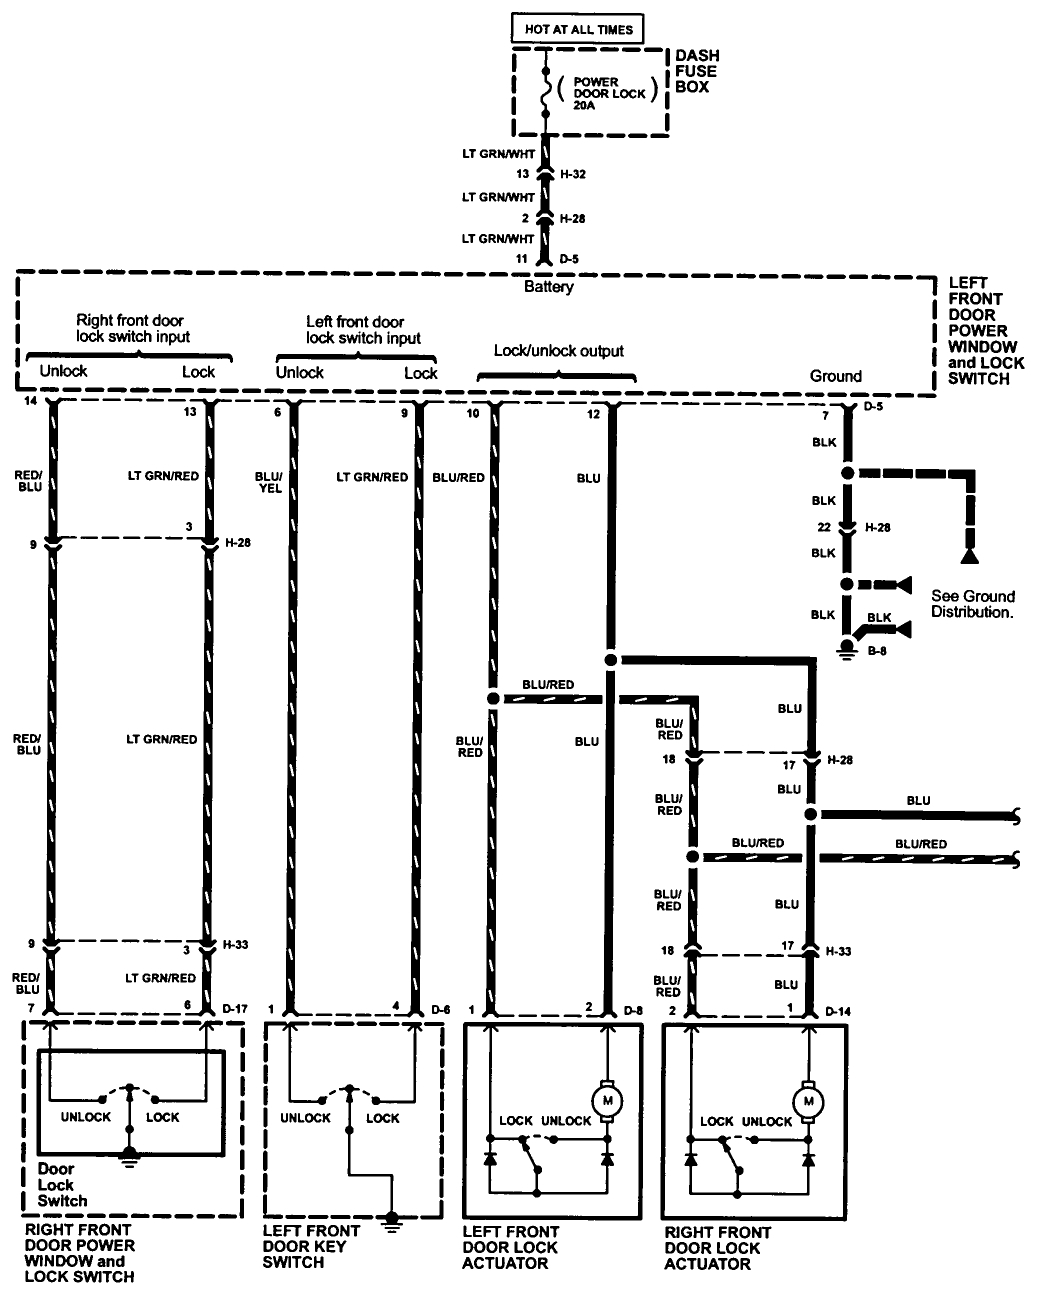 Cherry Master Wiring Diagram from www.2carpros.com